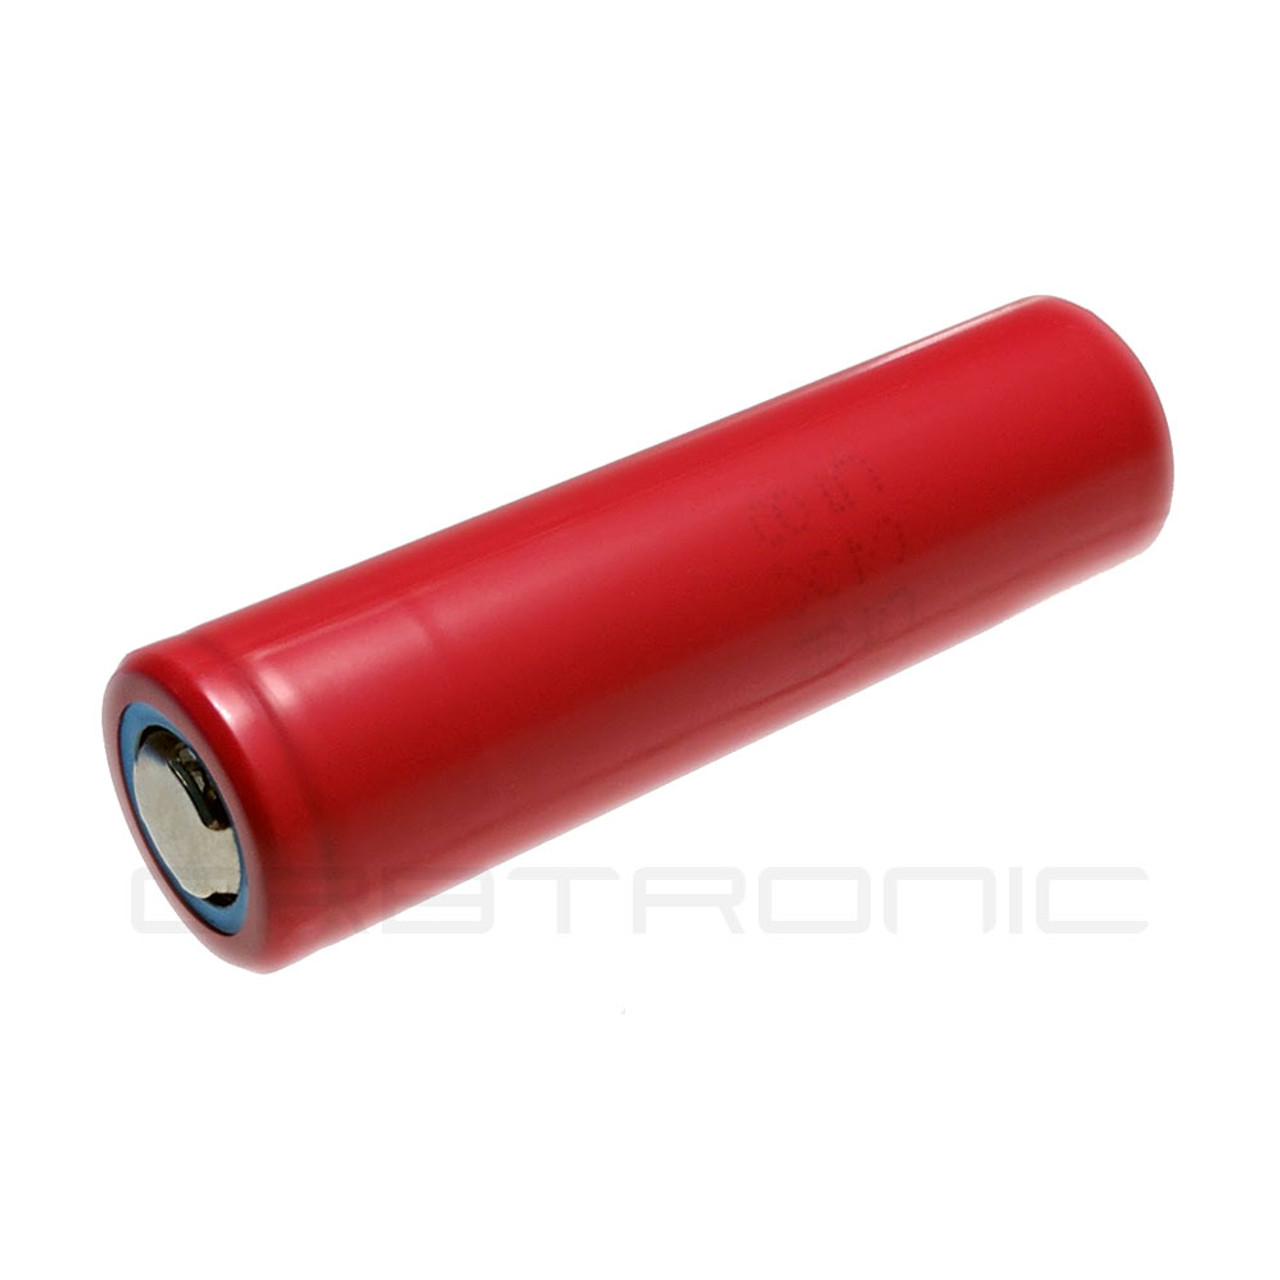 18650 Imr Battery Ur18650wx Sanyo Panasonic